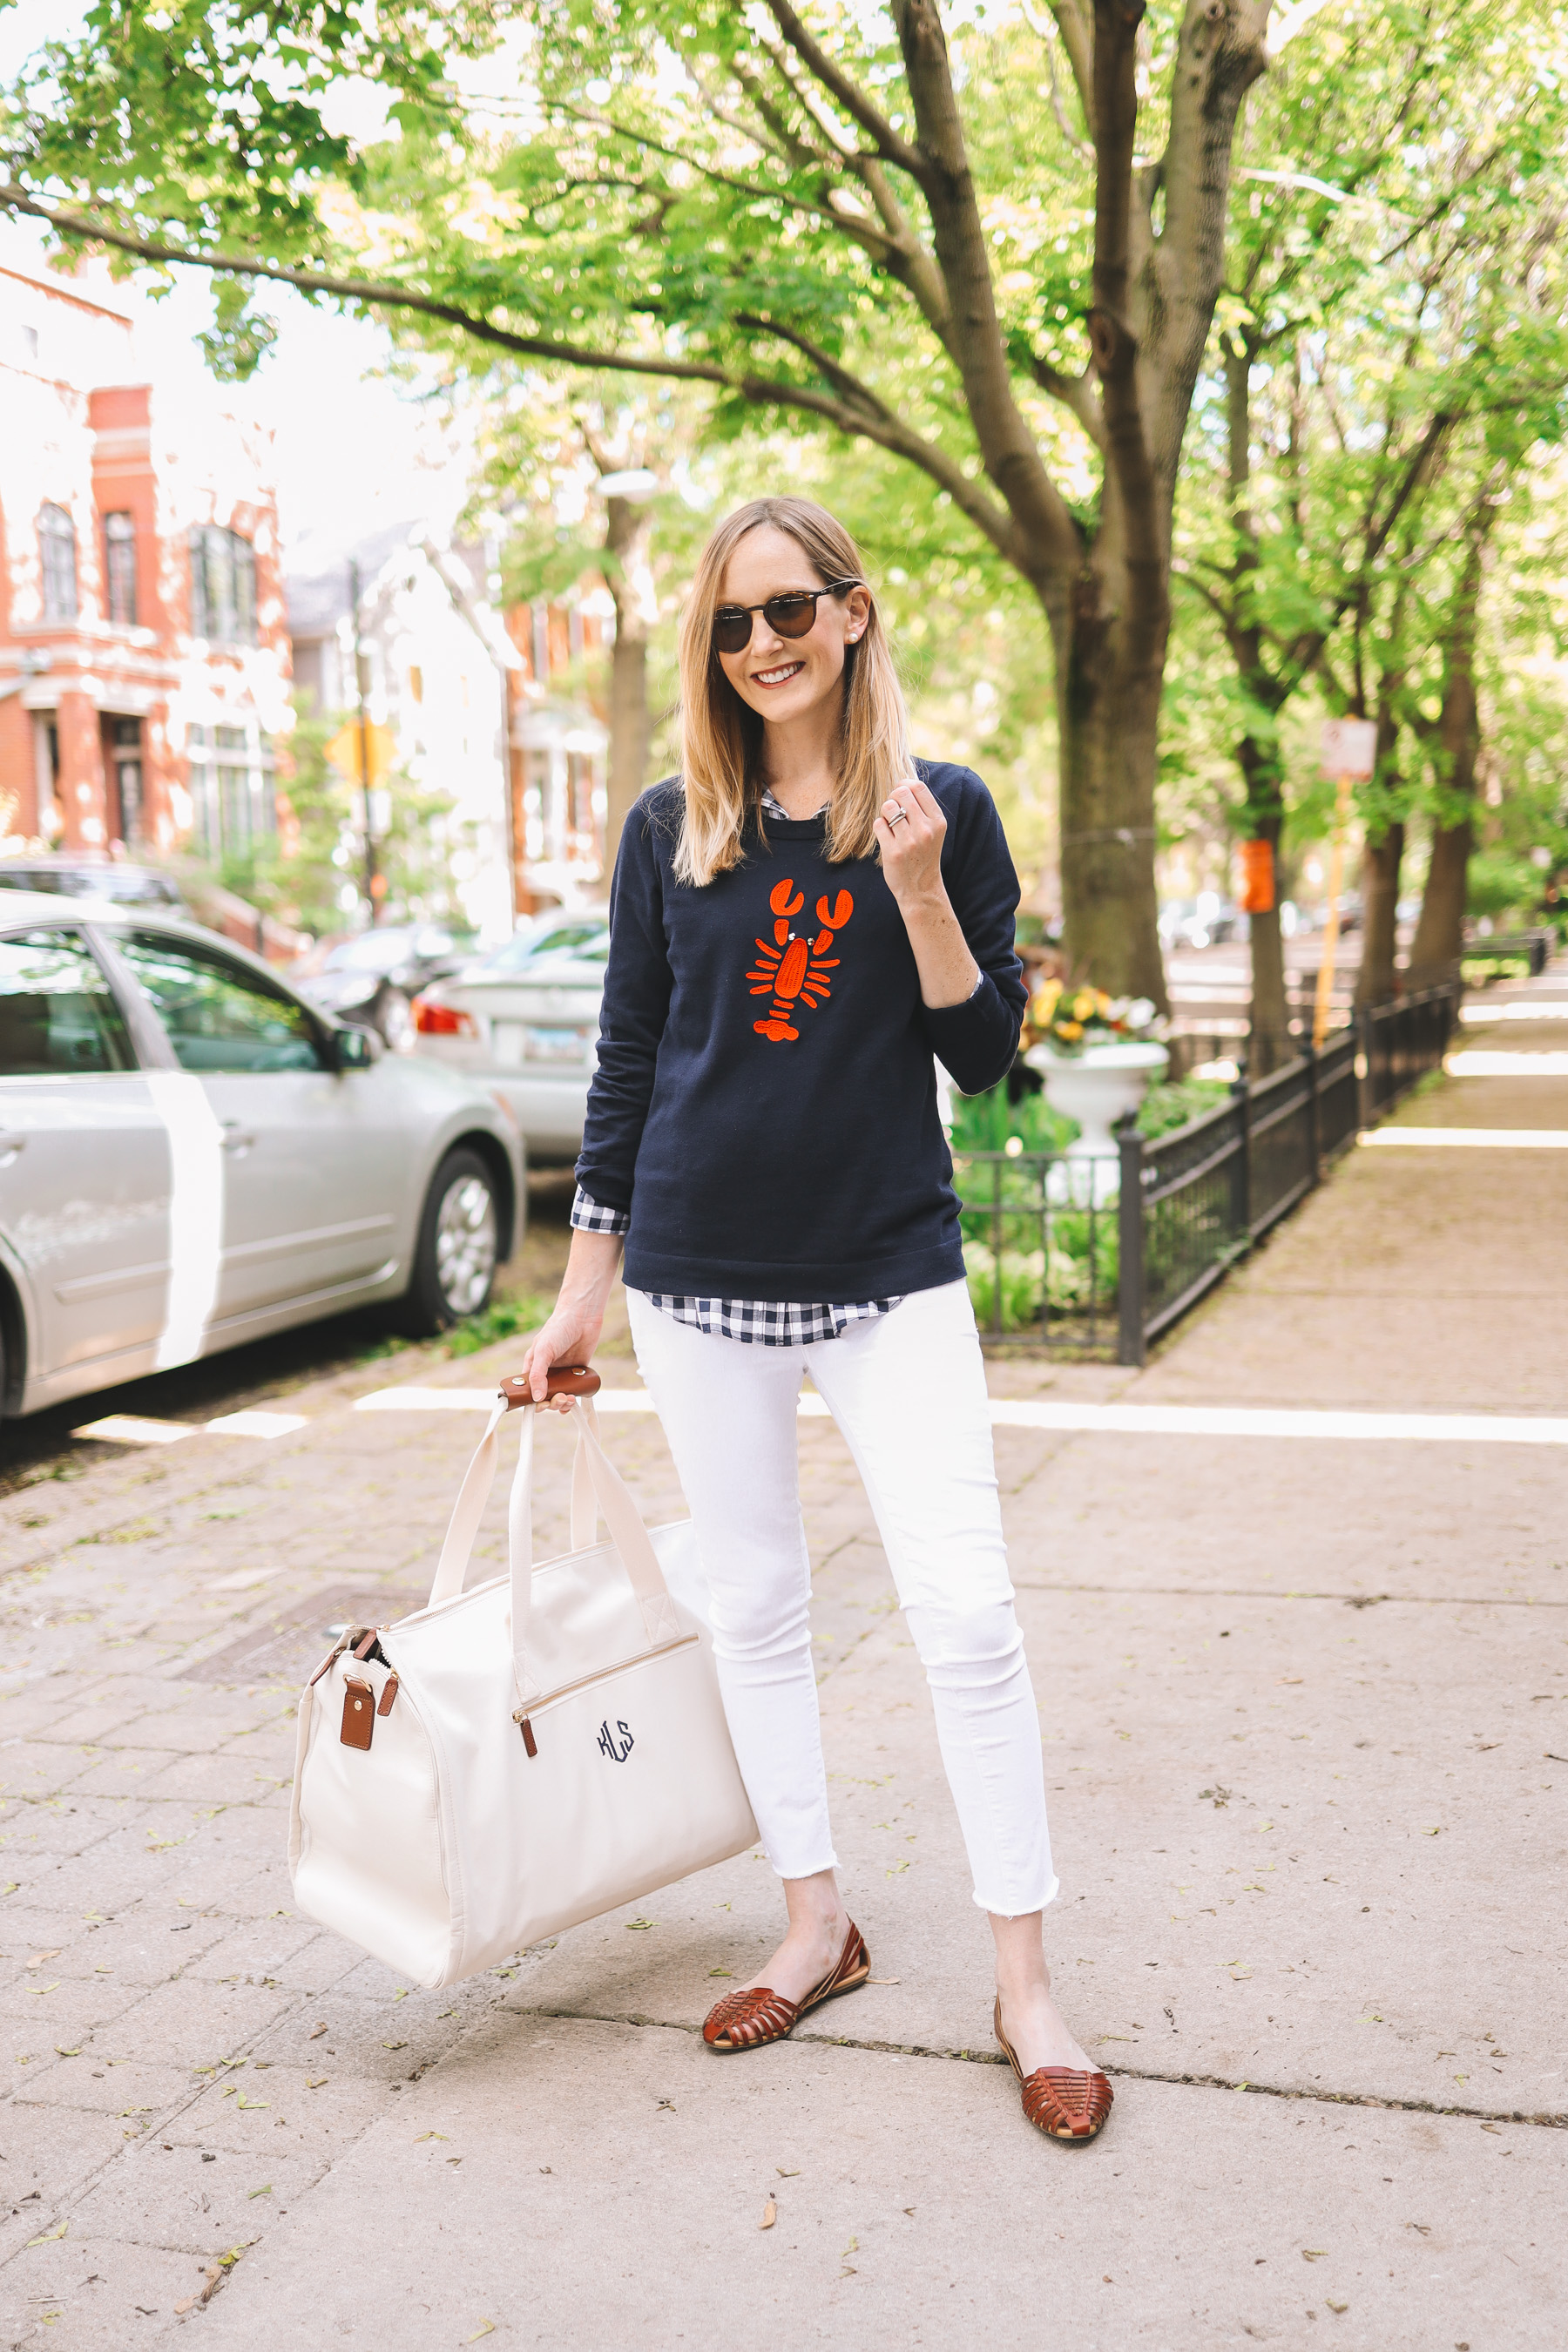 b40b533a1a70 Kelly is sharing pieces from the Memorial Day J.Crew Factory Sale